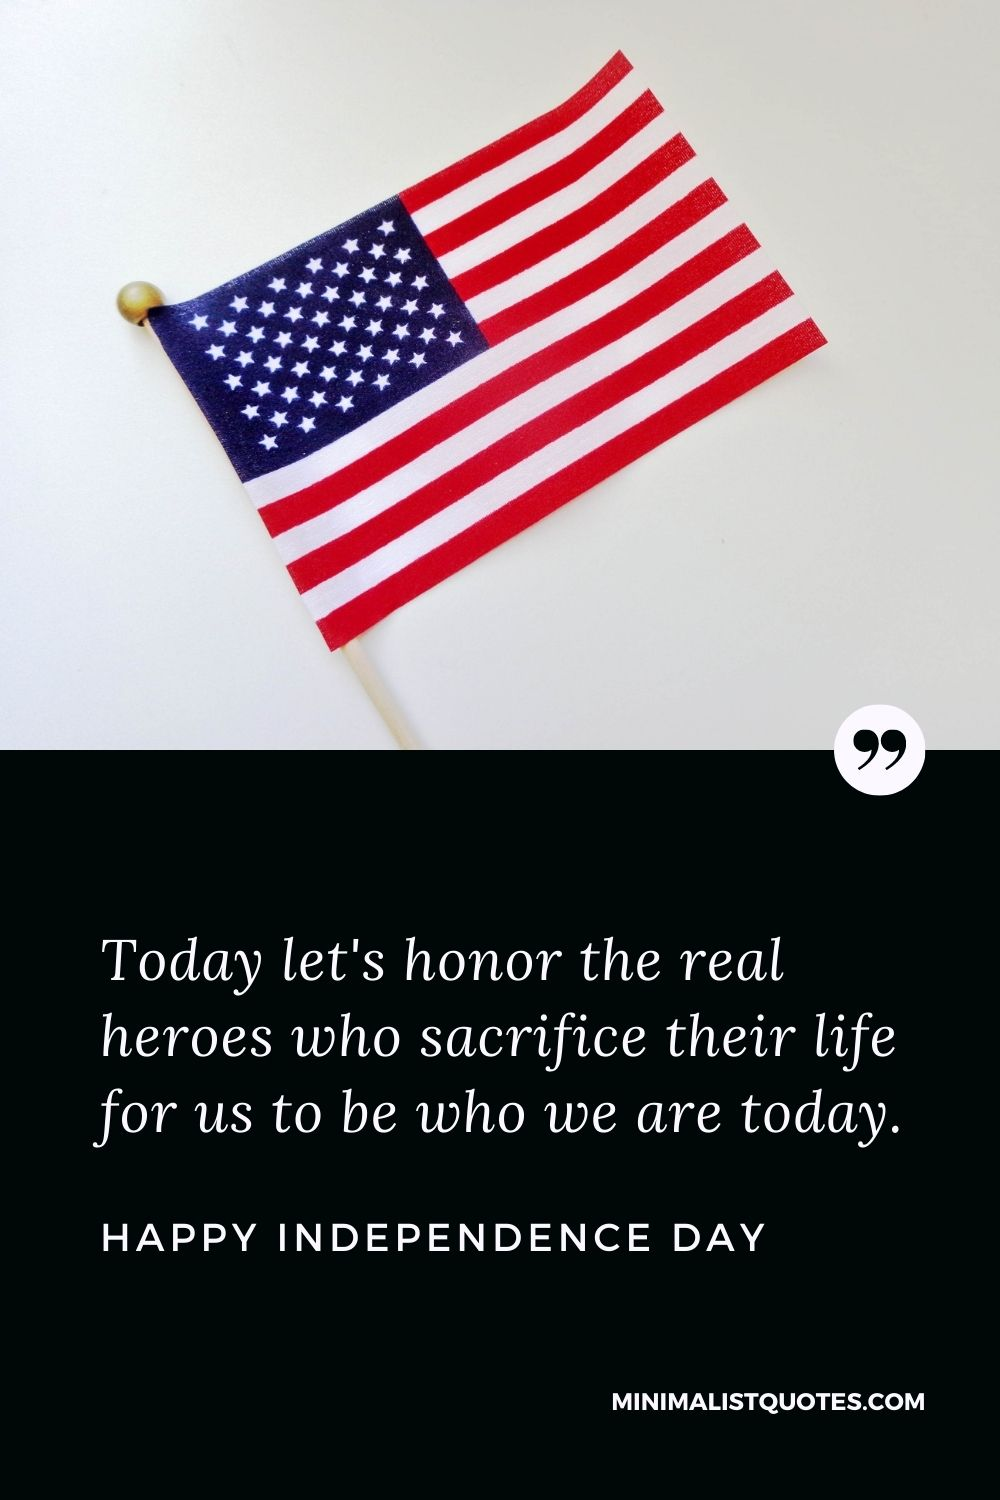 Independence Day wishes quotes with images: Today let's honor thereal heroes who sacrifice their life forus to be who we are today. Happy Independence Day!